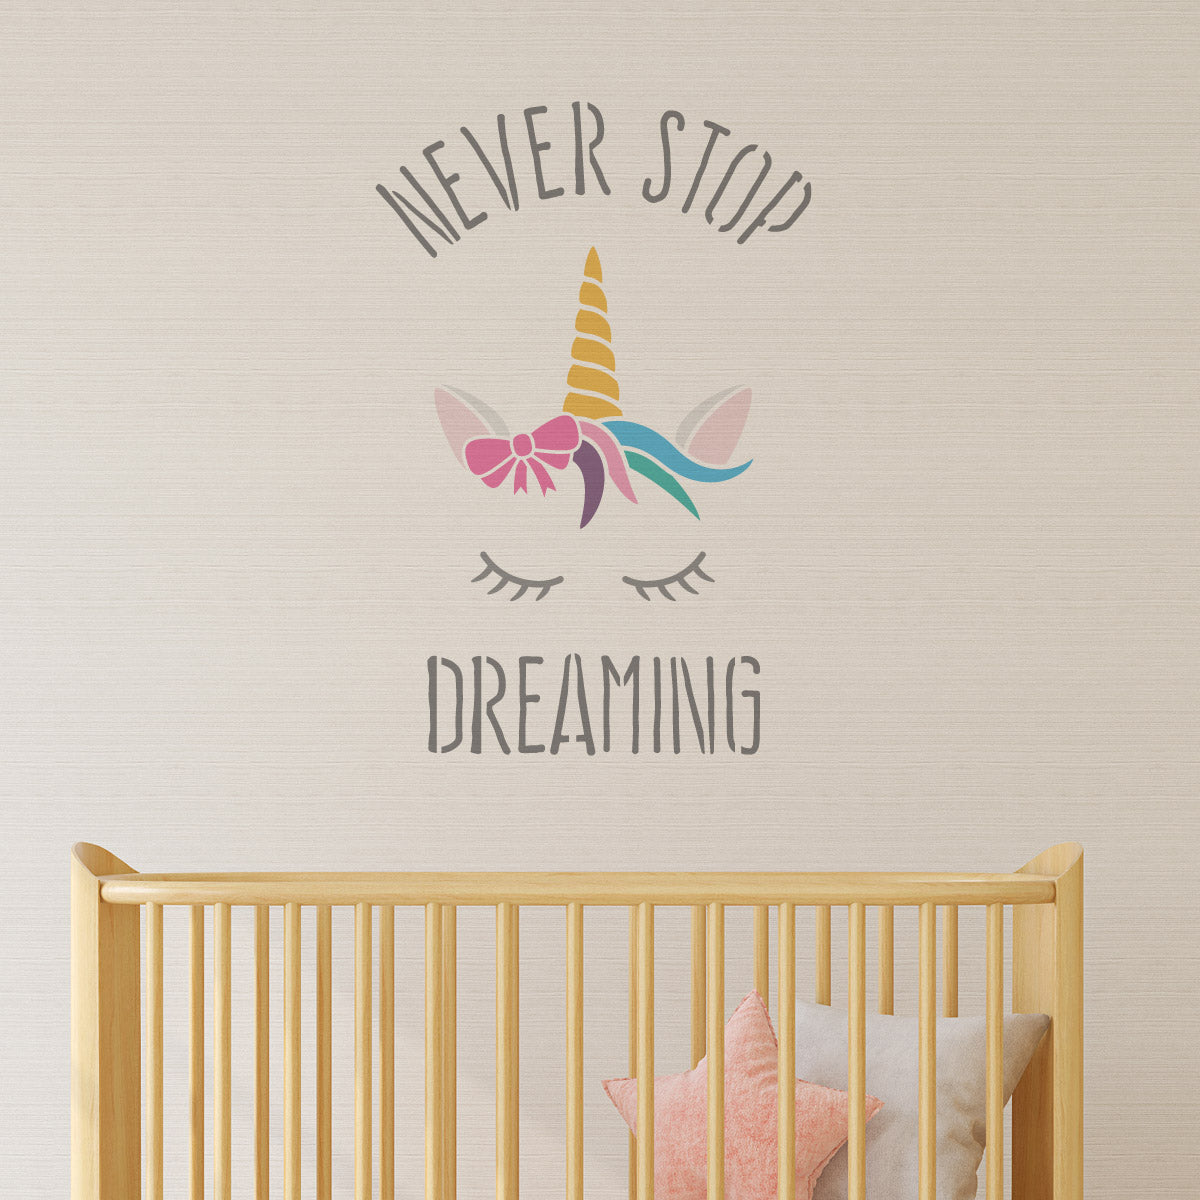 CraftStar Never Stop Dreaming Unicorn Stencil on Nursery Wall